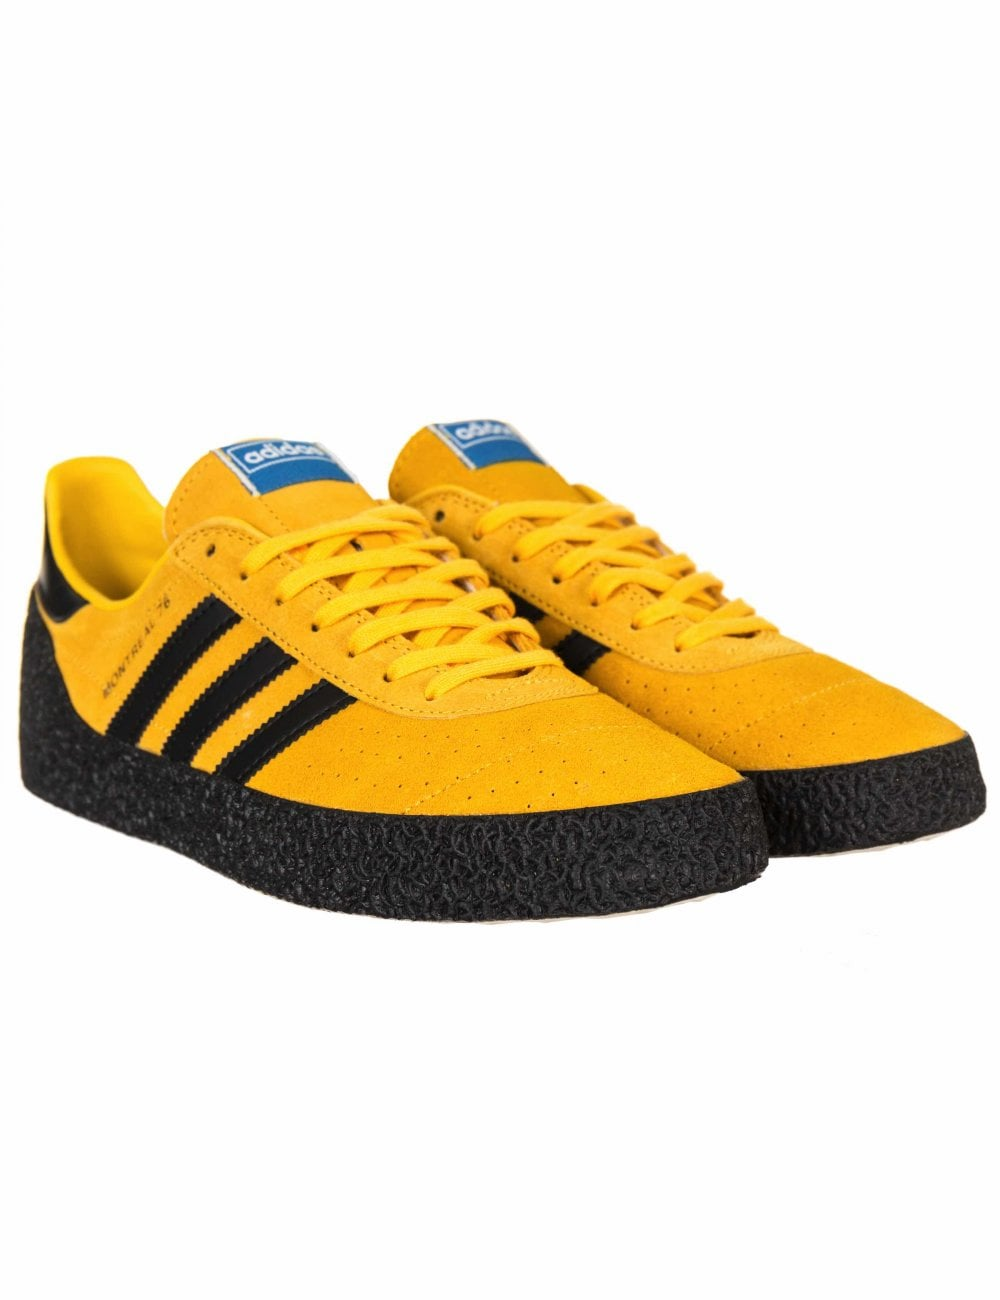 Ondular Comercio intersección  Adidas Originals Montreal 76 Trainers - Gold/Black - Footwear from Fat  Buddha Store UK